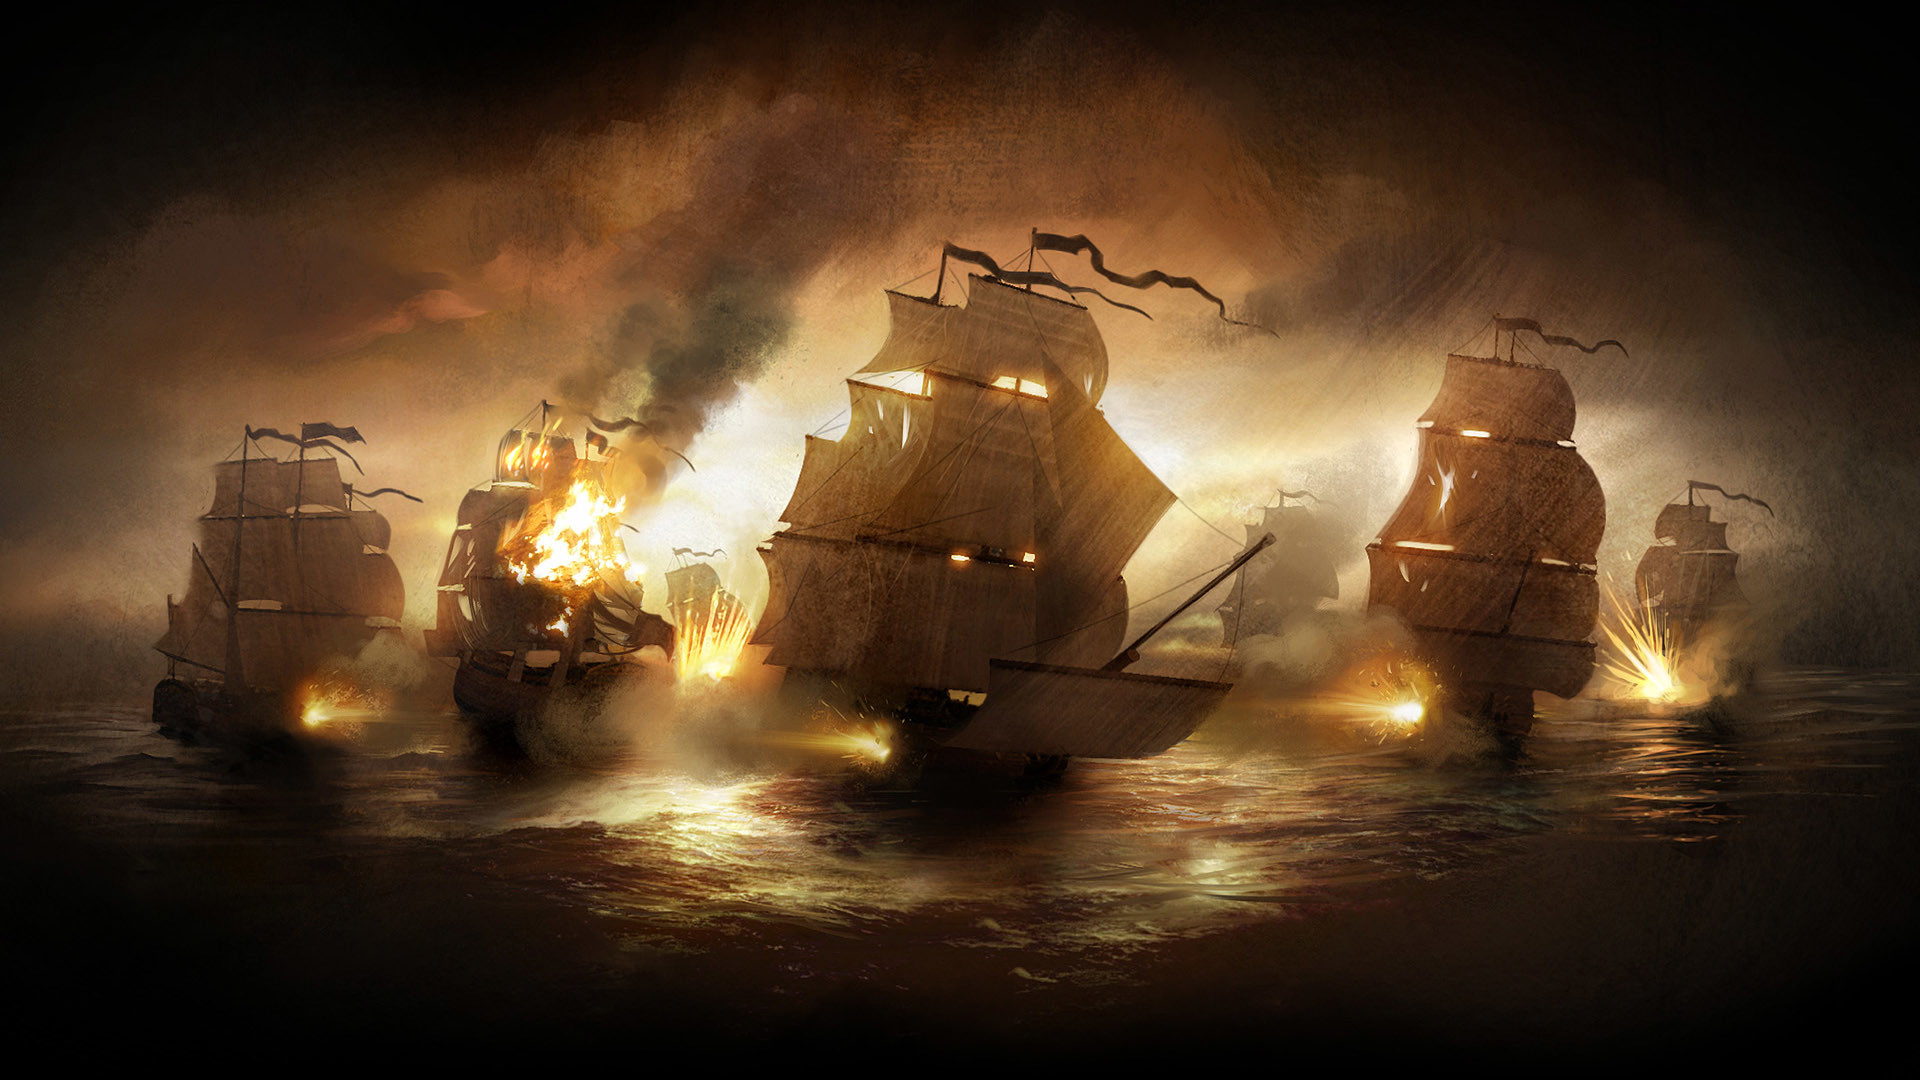 1920x1080 Pirate Ship HD Wallpapers Backgrounds Wallpaper